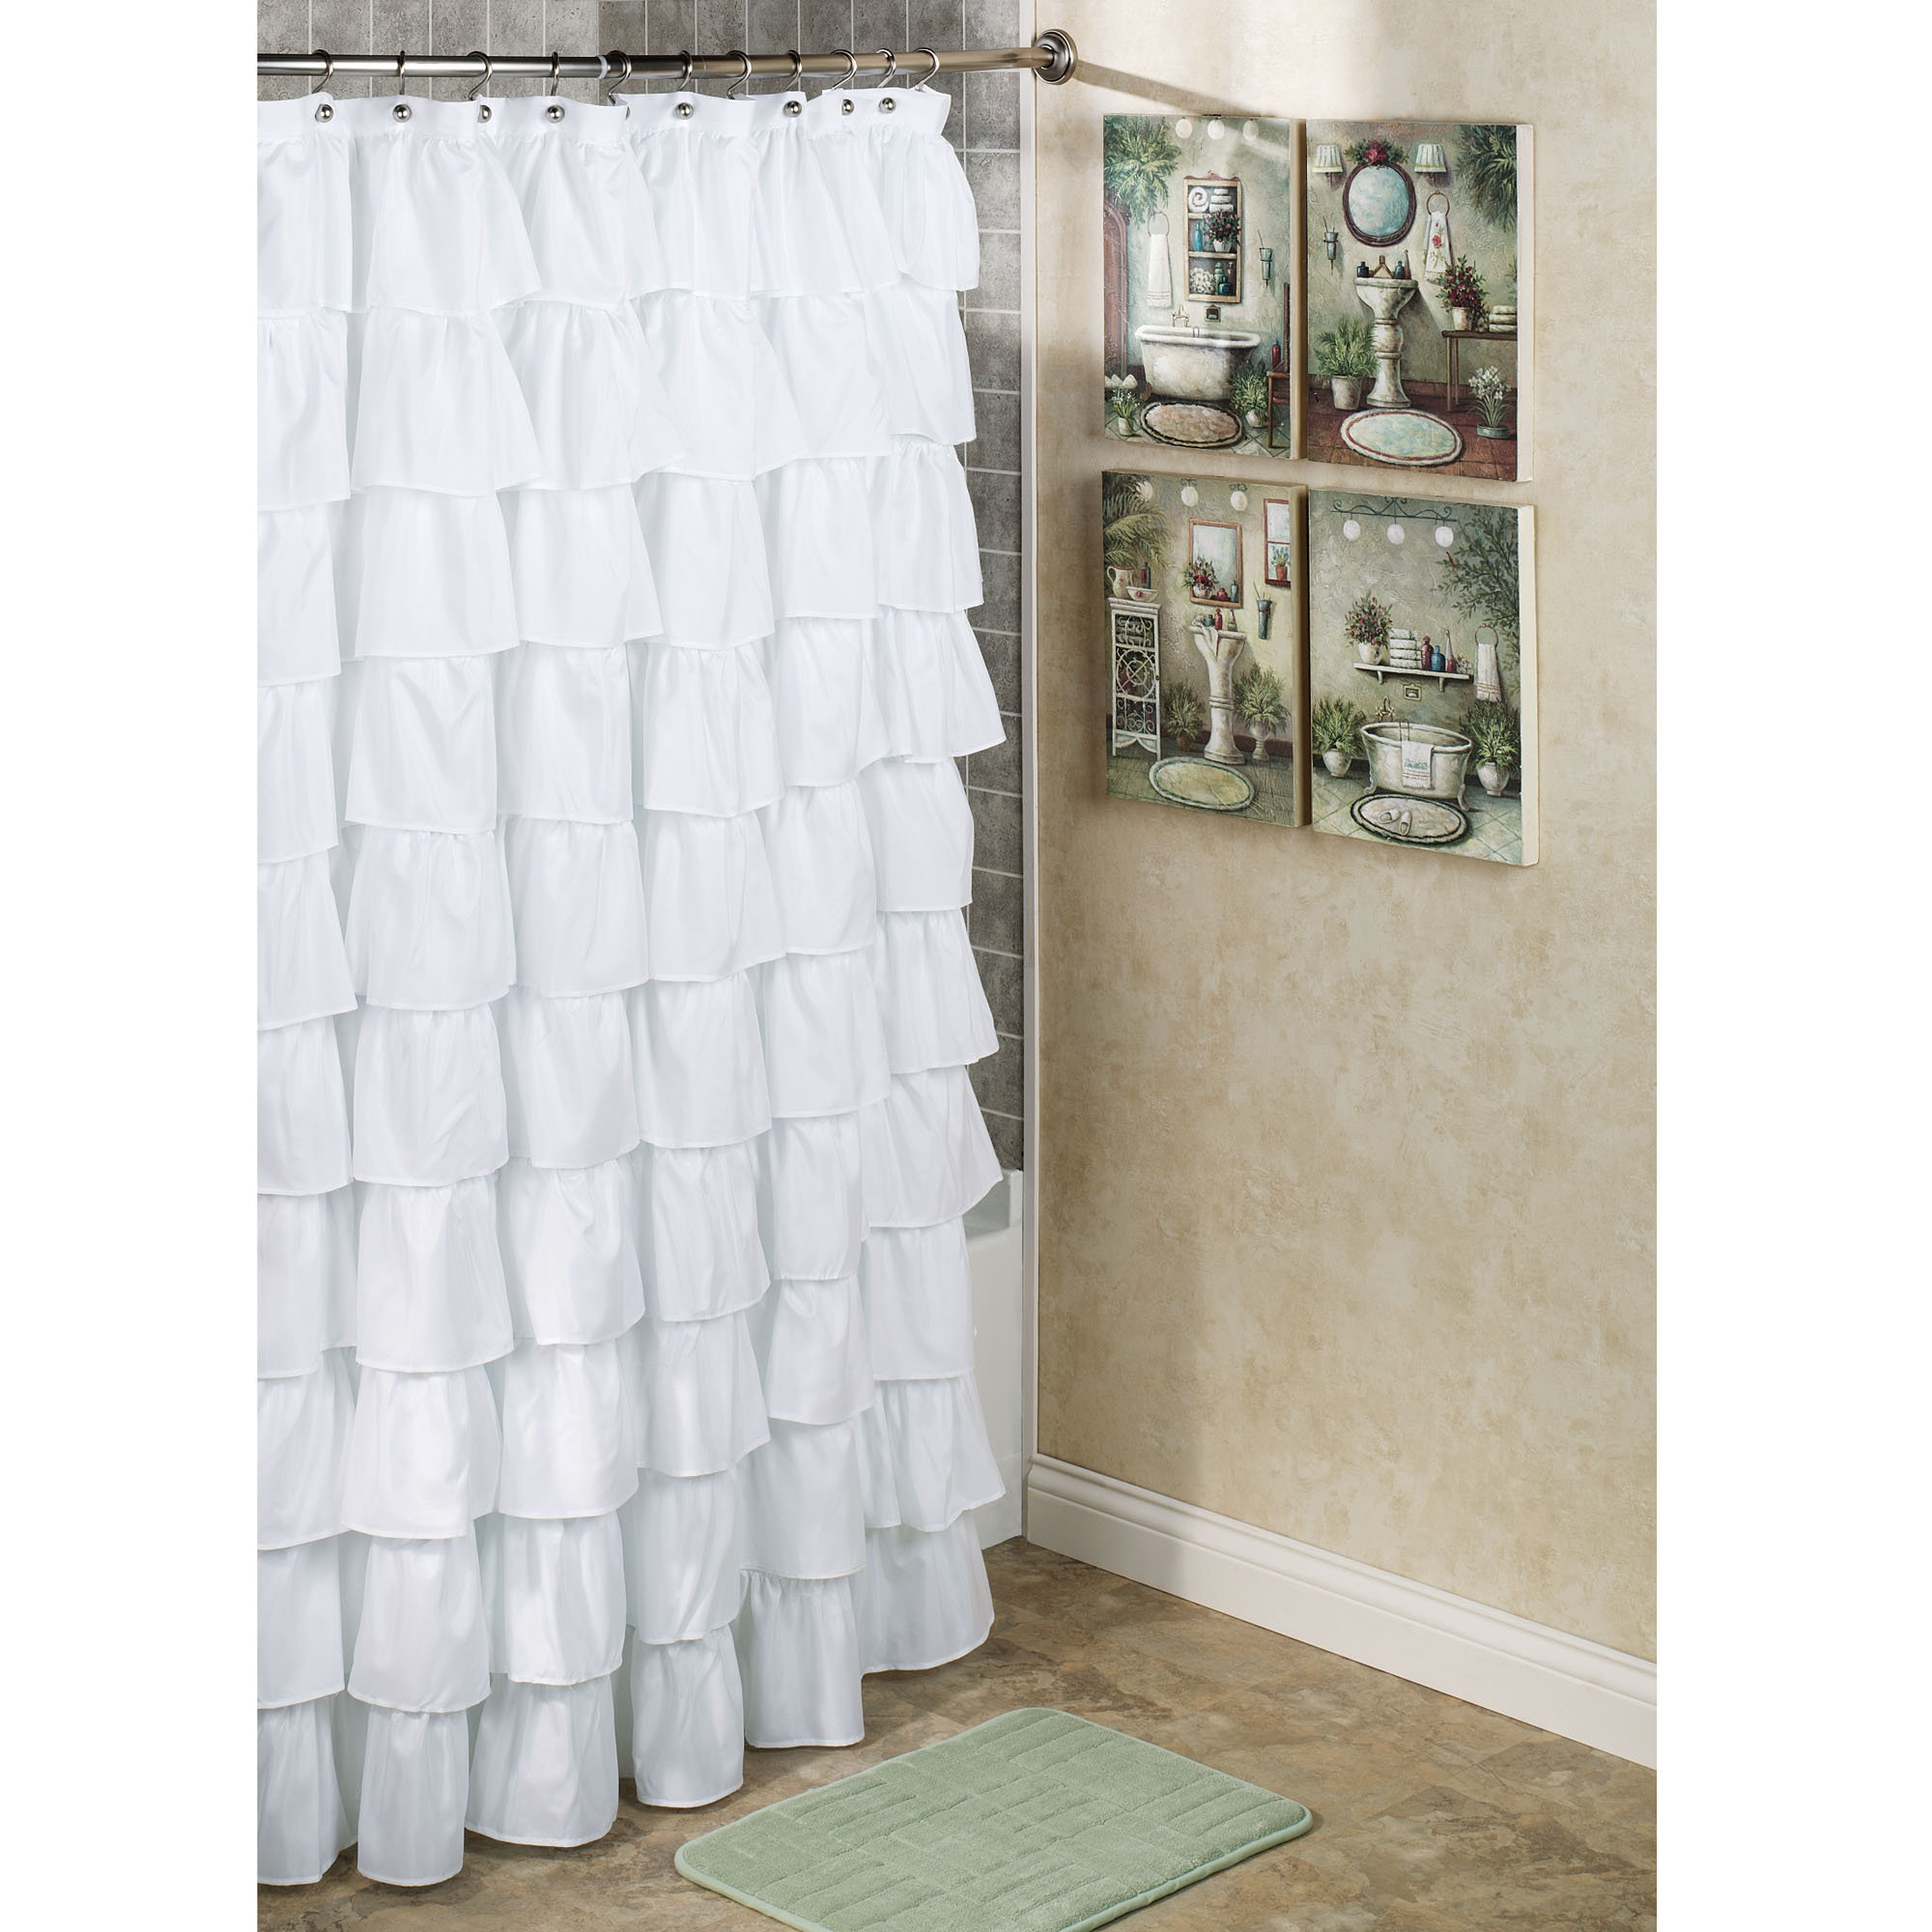 Incredible White Ruffled Extra Long Shower Curtain With Artwork with size 2000 X 2000